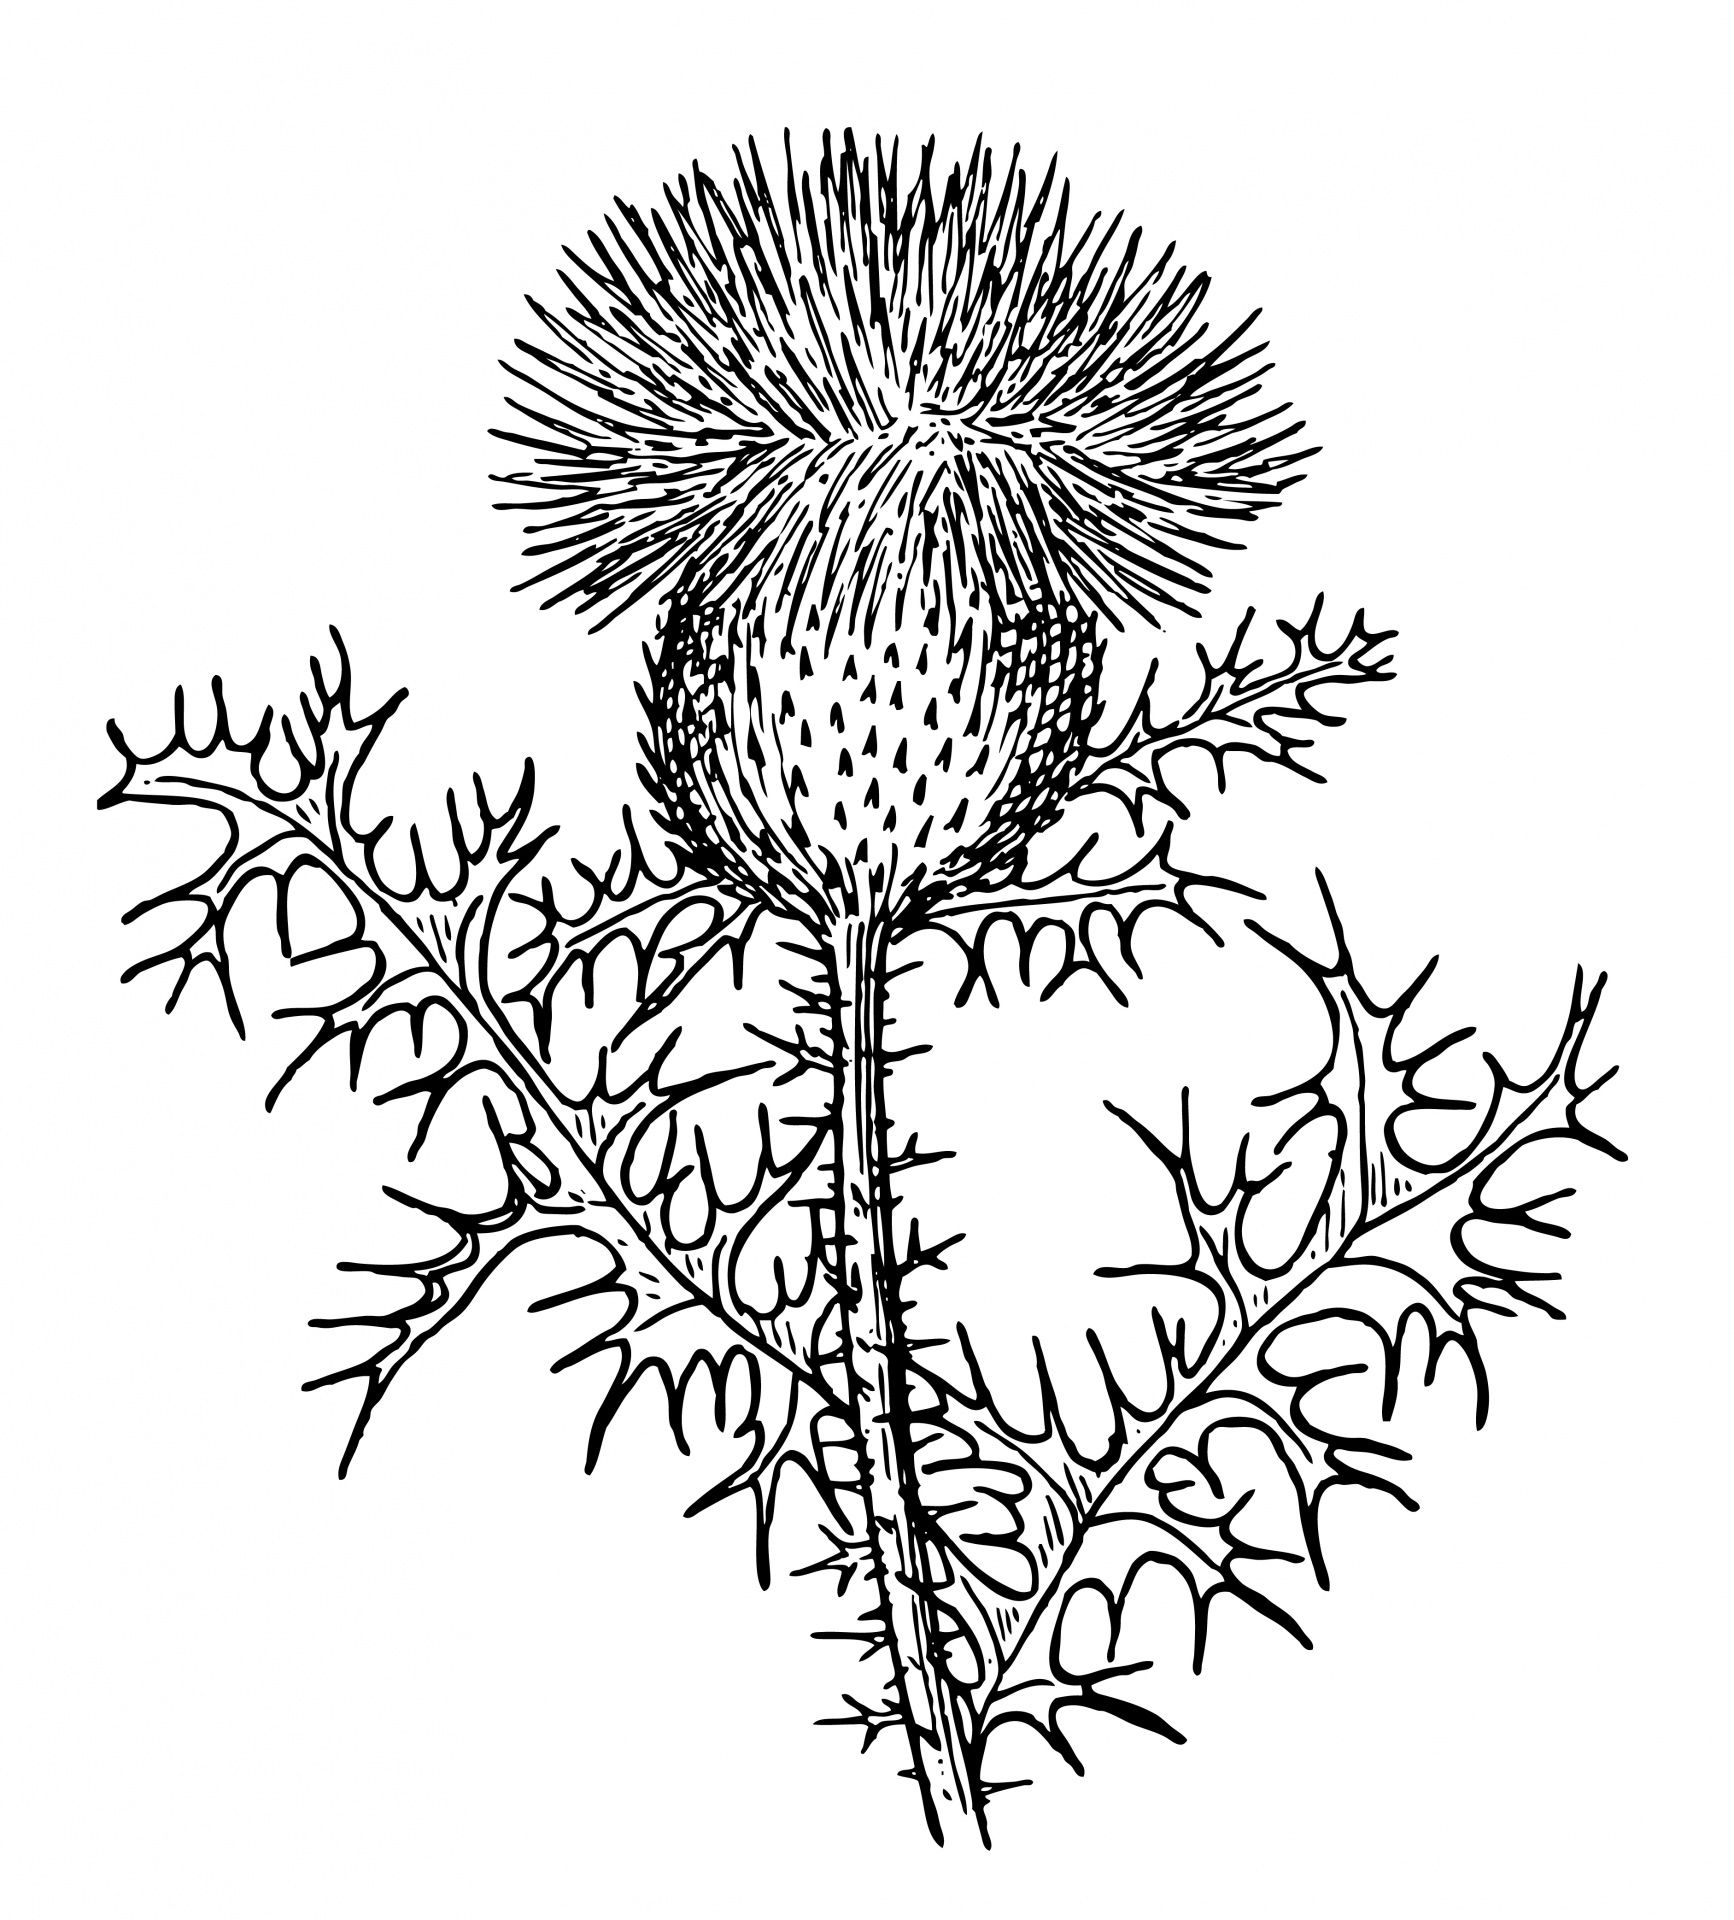 Thistle clipart images png black and white download Thistle Clipart Illustration | Gardening in 2019 | Thistle ... png black and white download